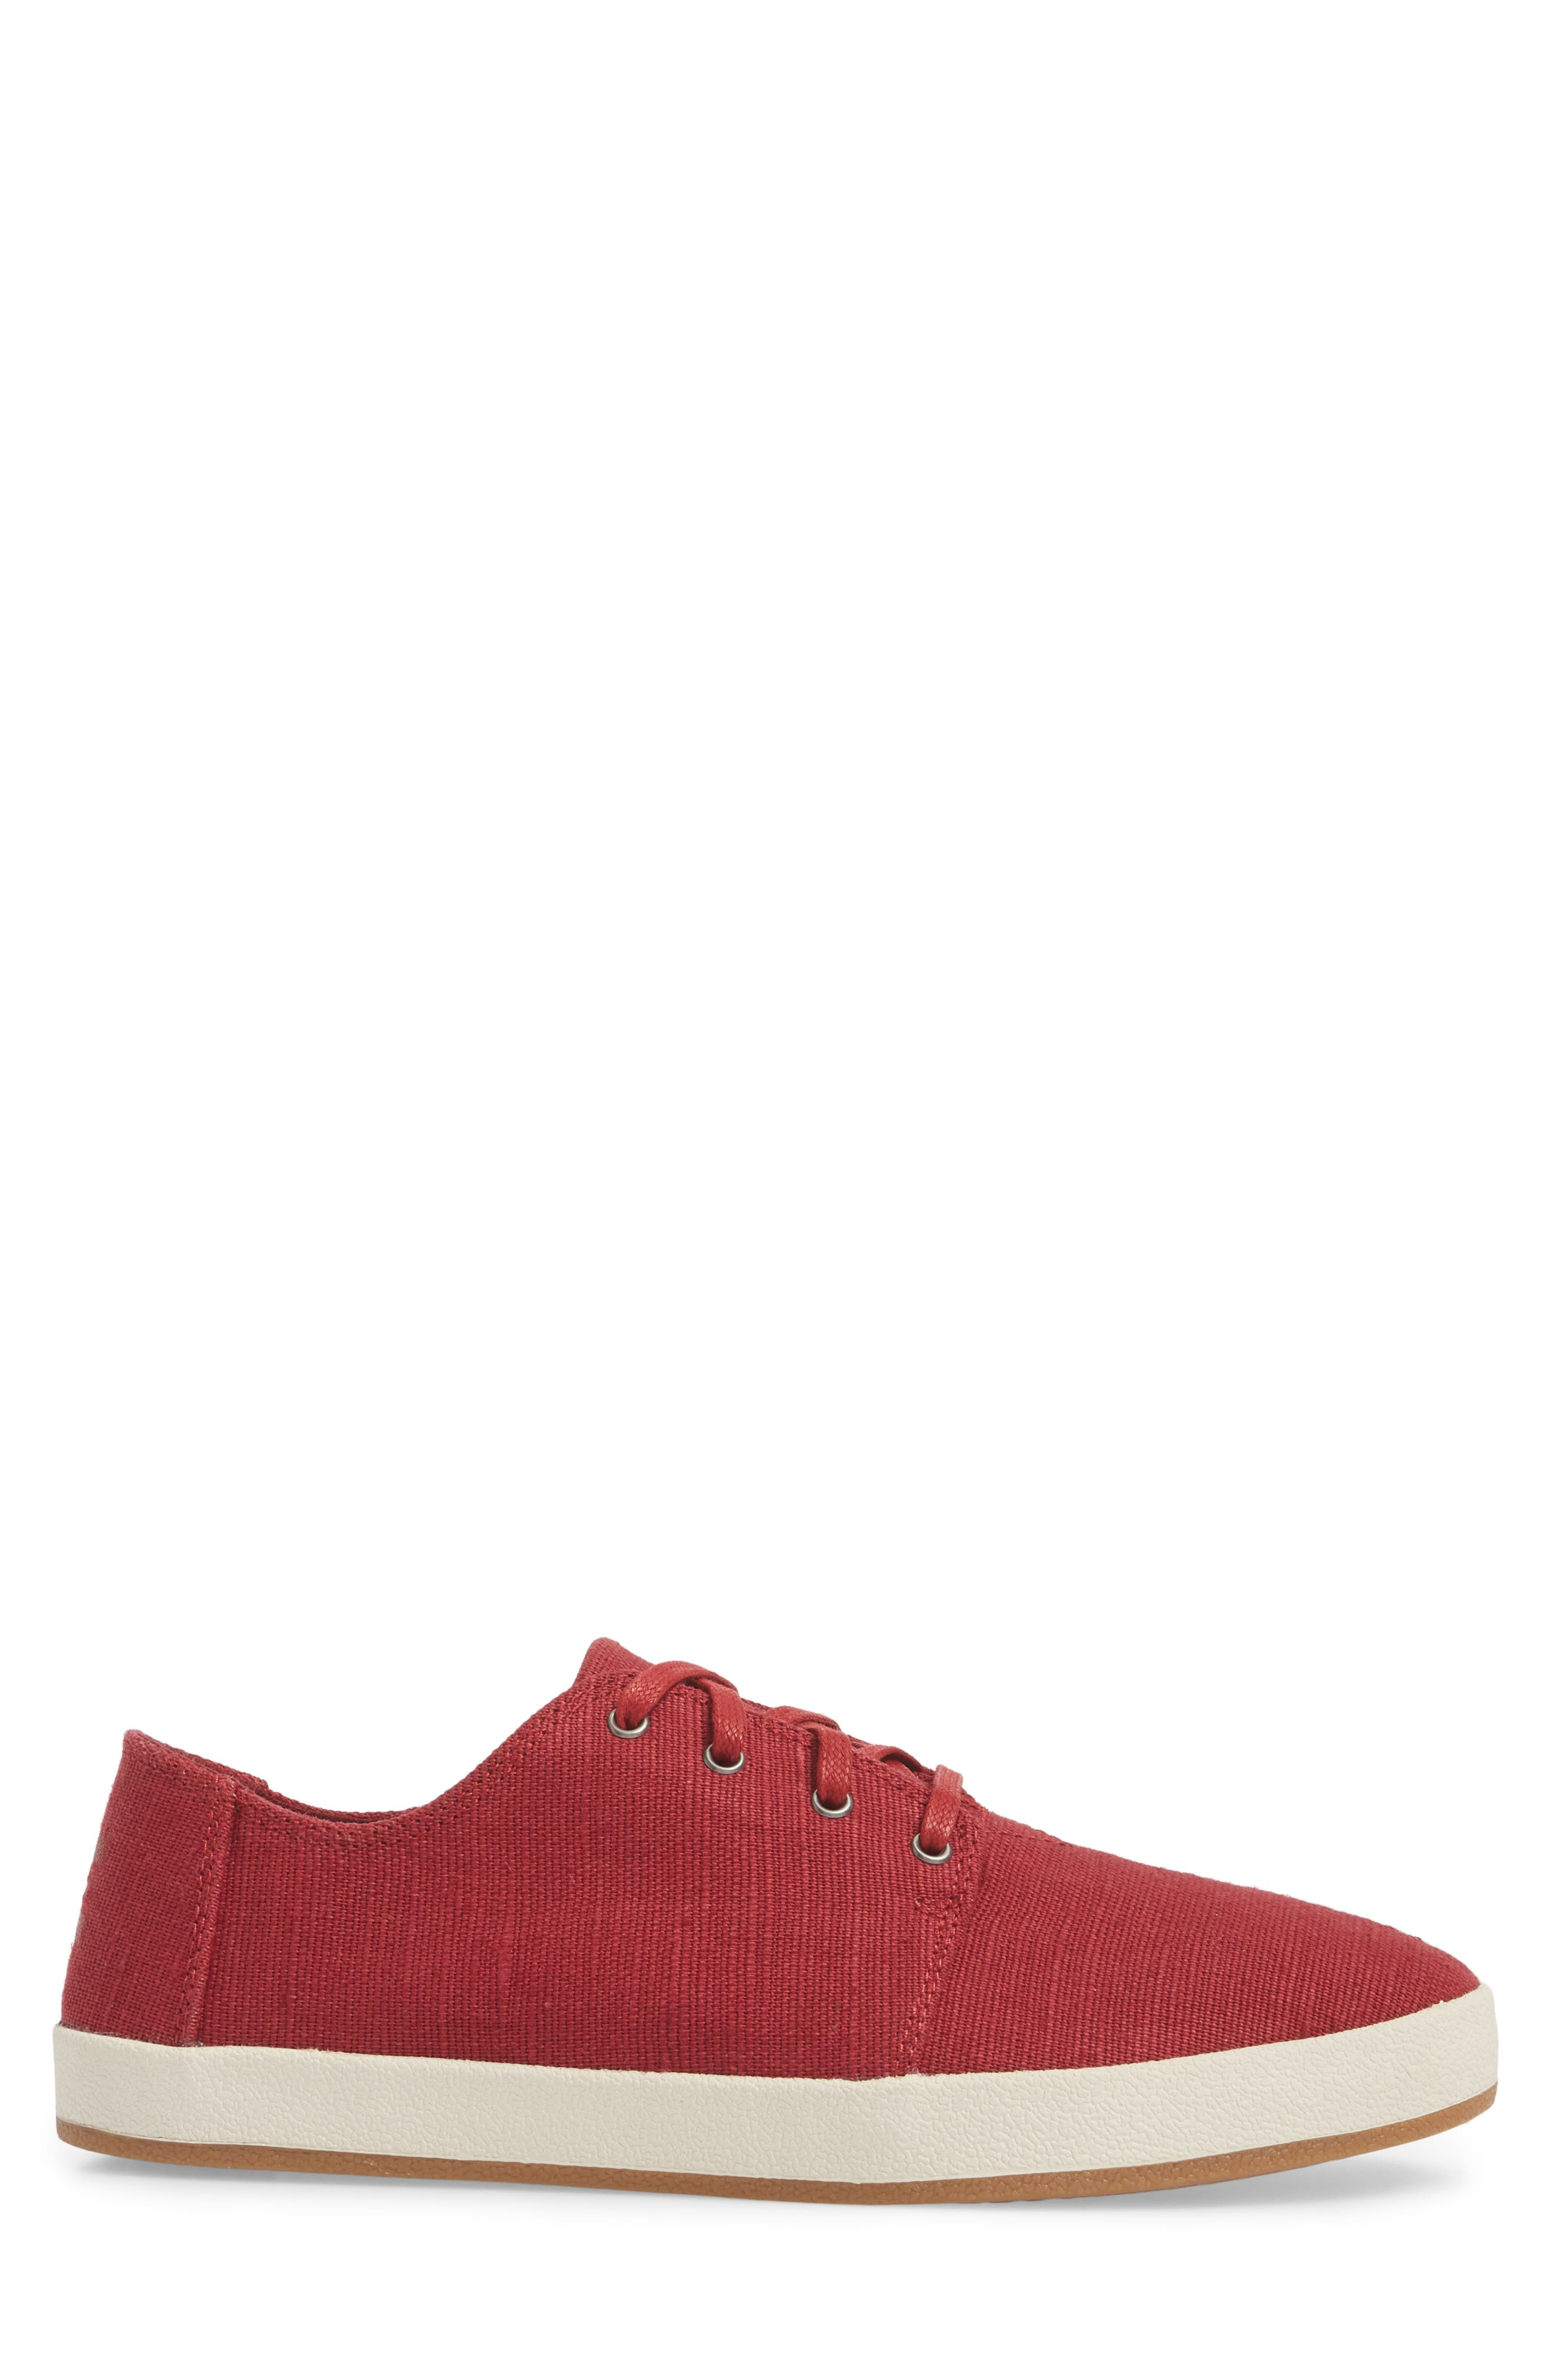 Payton Sneaker,                             Alternate thumbnail 3, color,                             Henna Red Heritage Canvas